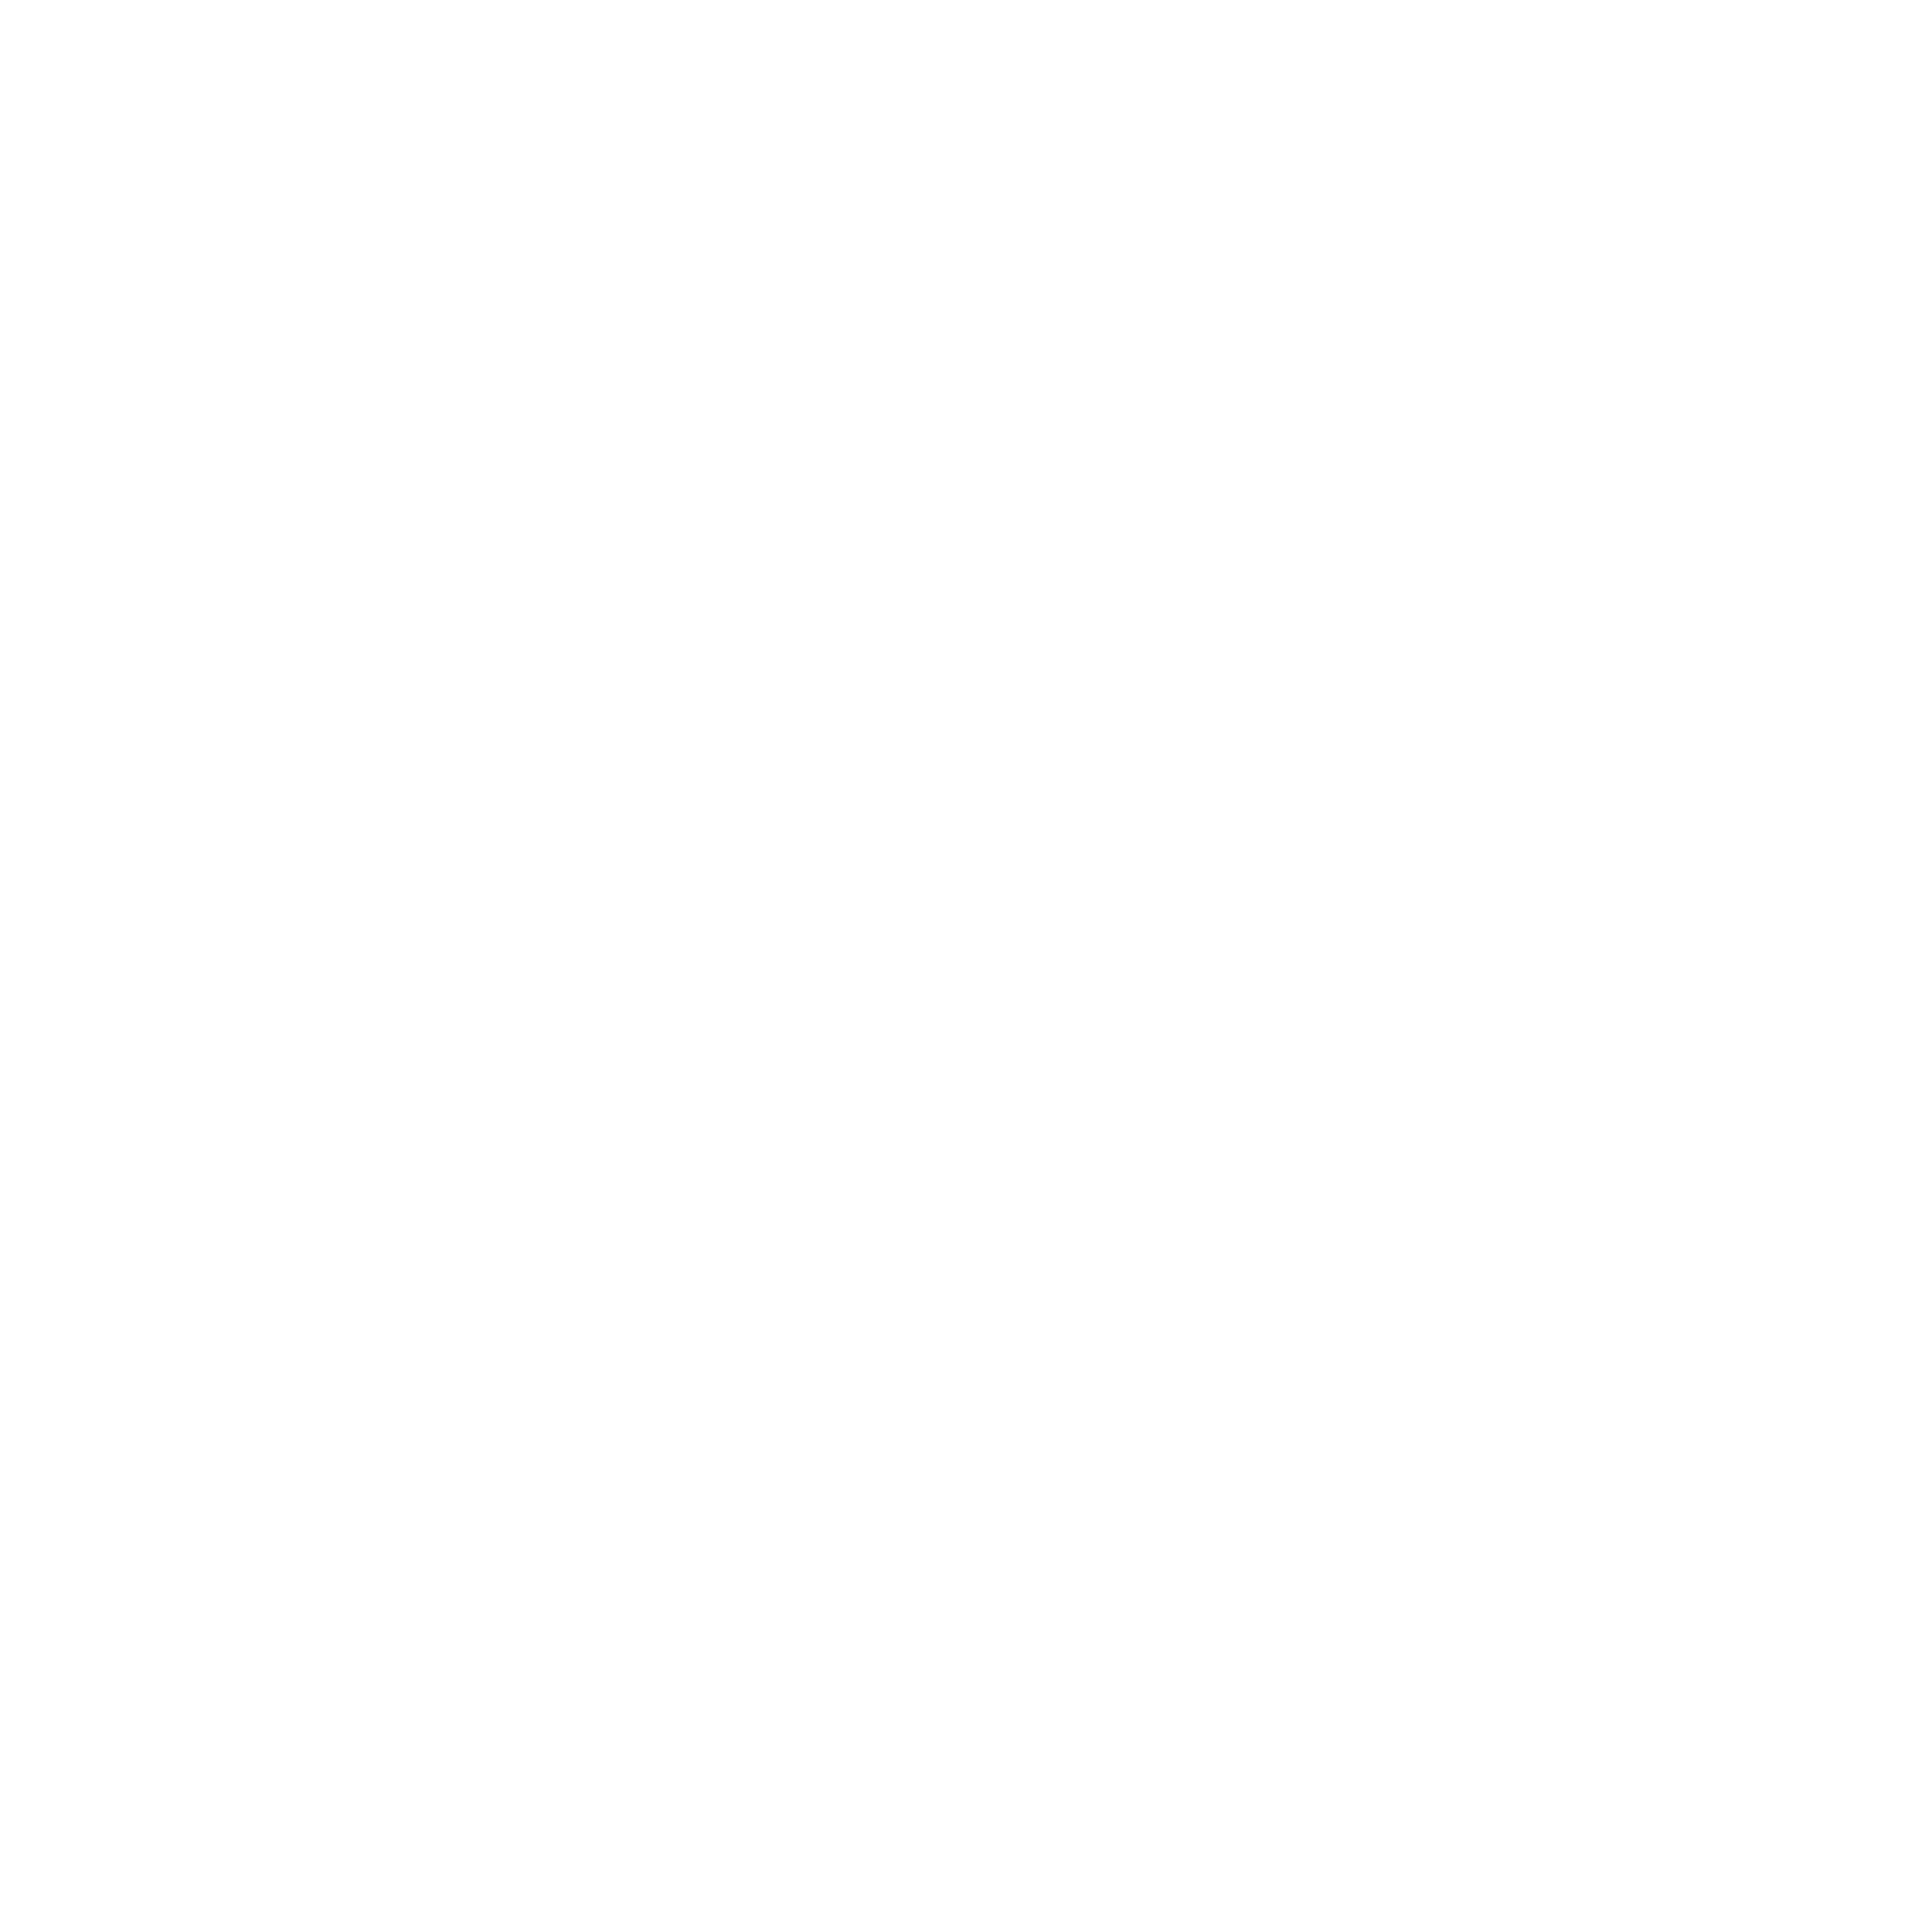 AAHSFF 2021 BEST OVERALL Nominee